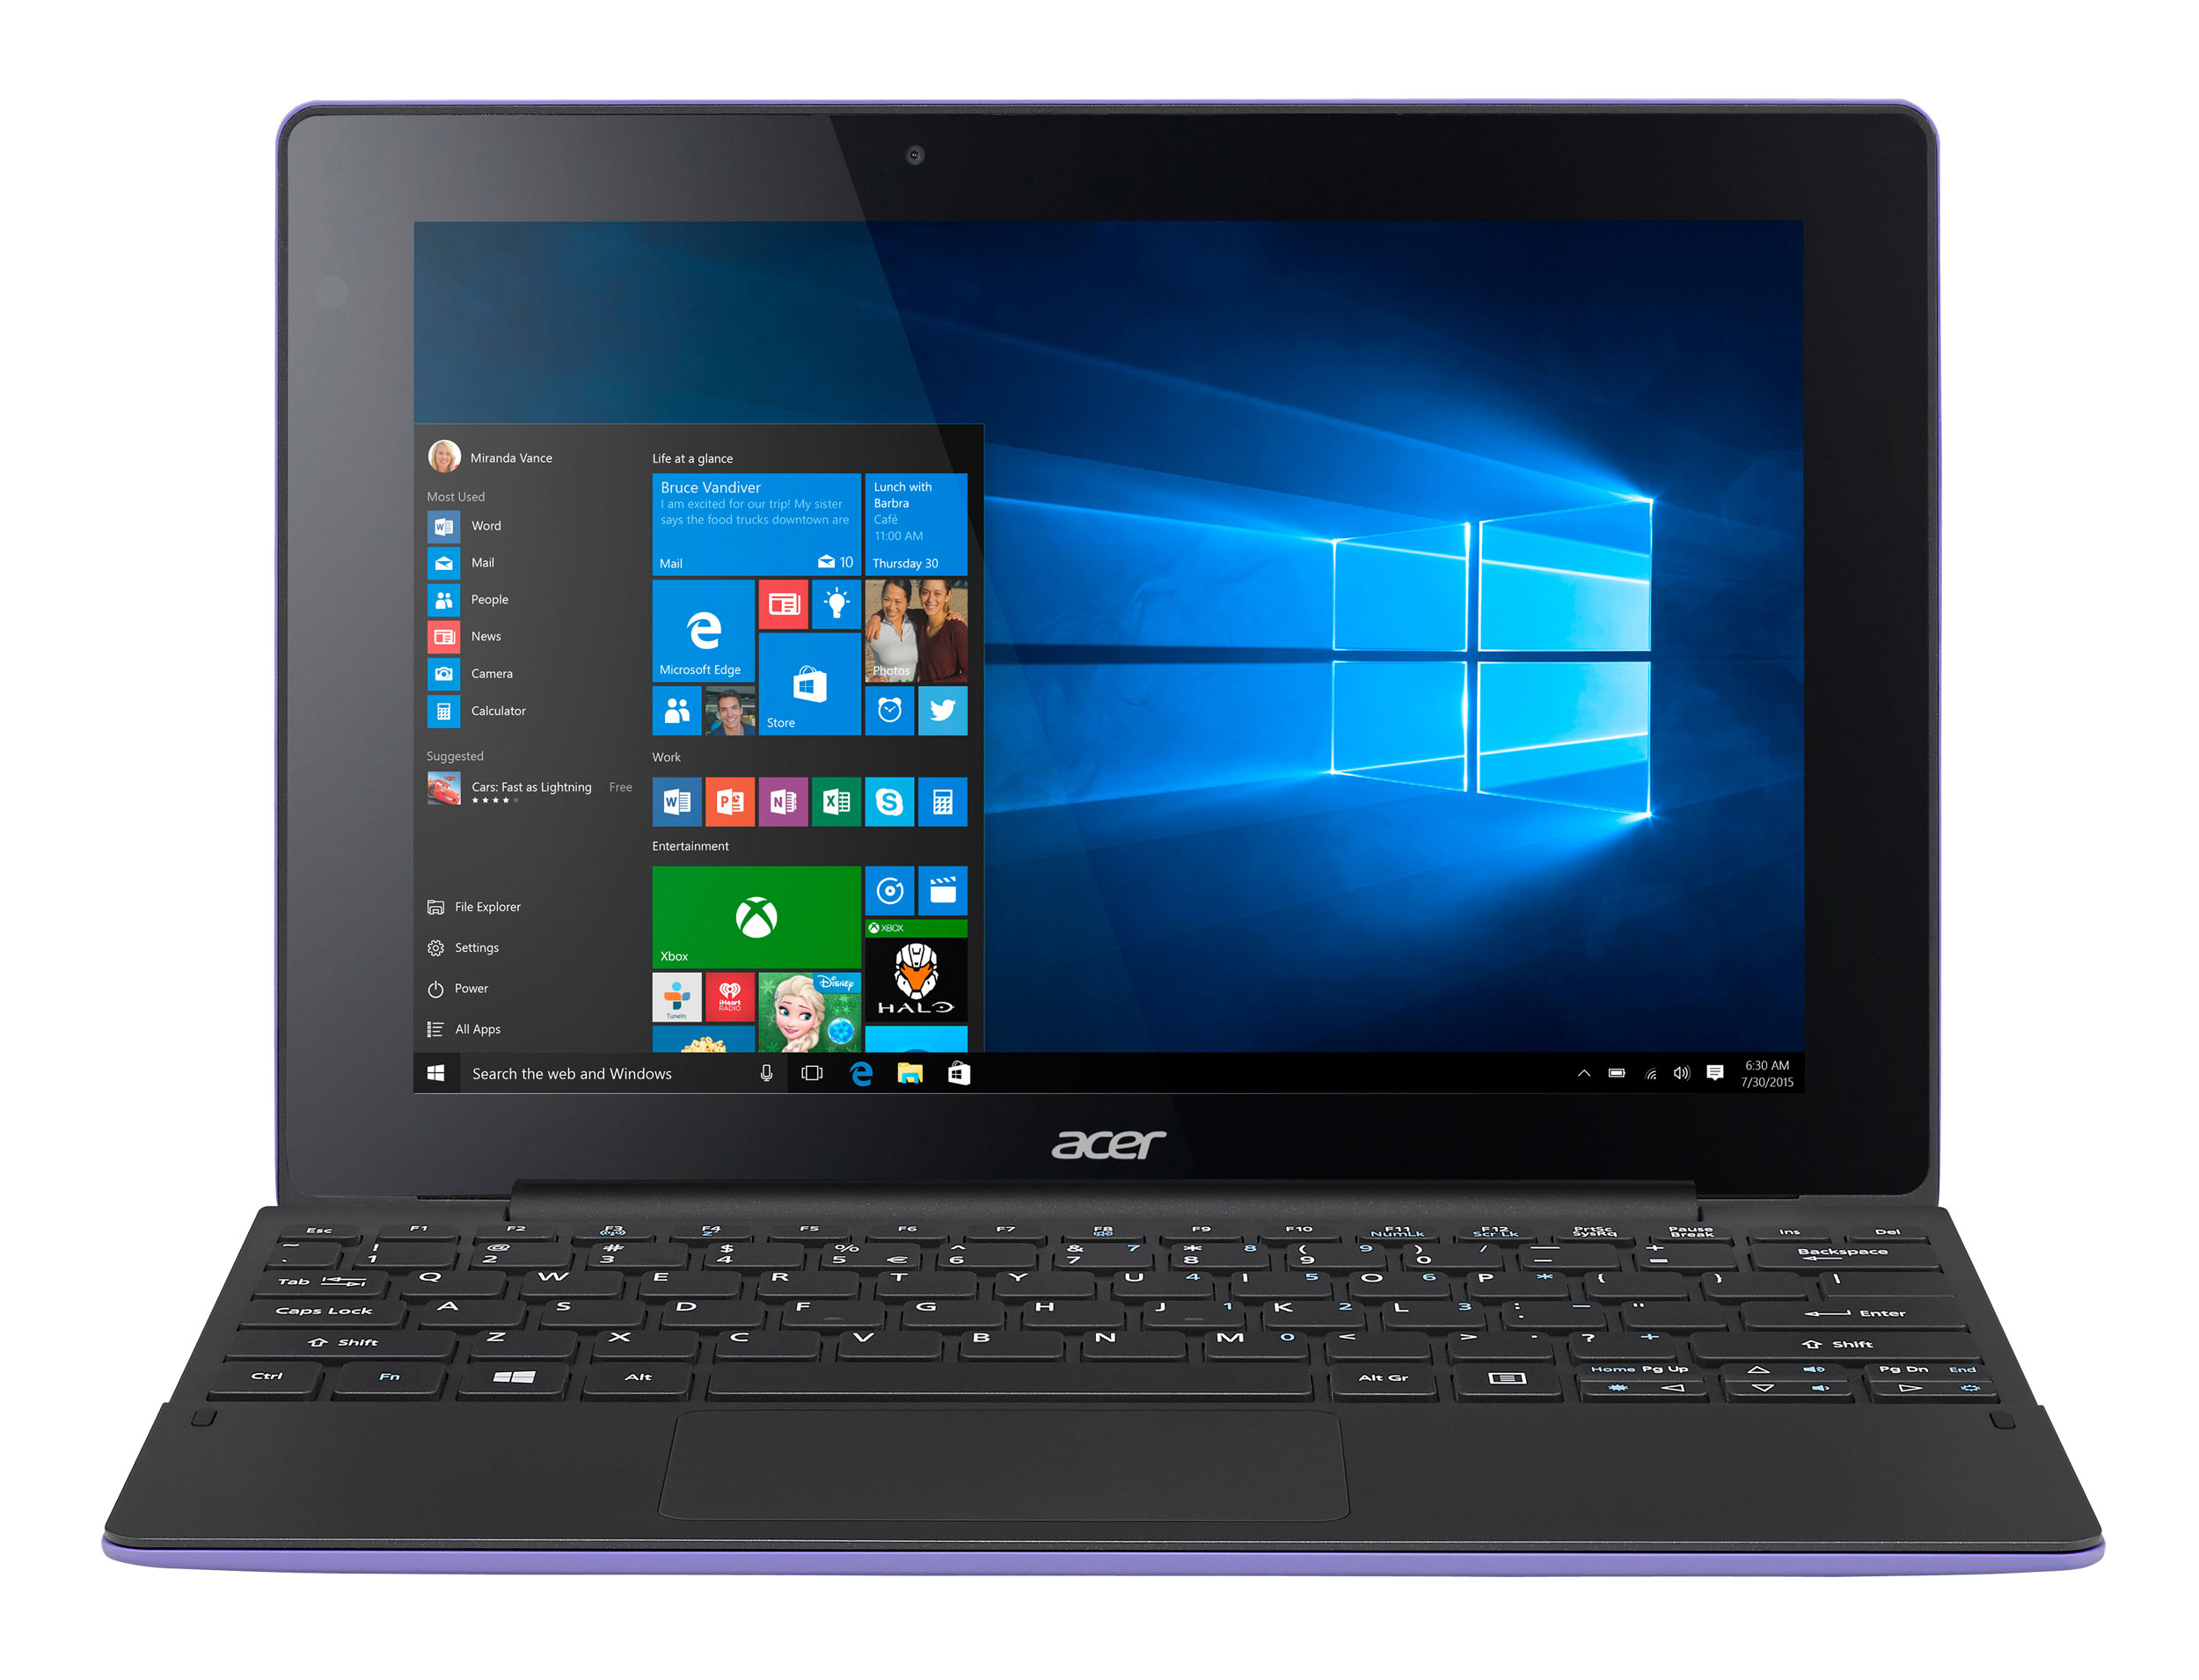 Acer Switch 10E Intel Atom 2Gb 32GB Emmc Ssd 10 Touchscreen 2 In 1 Laptop